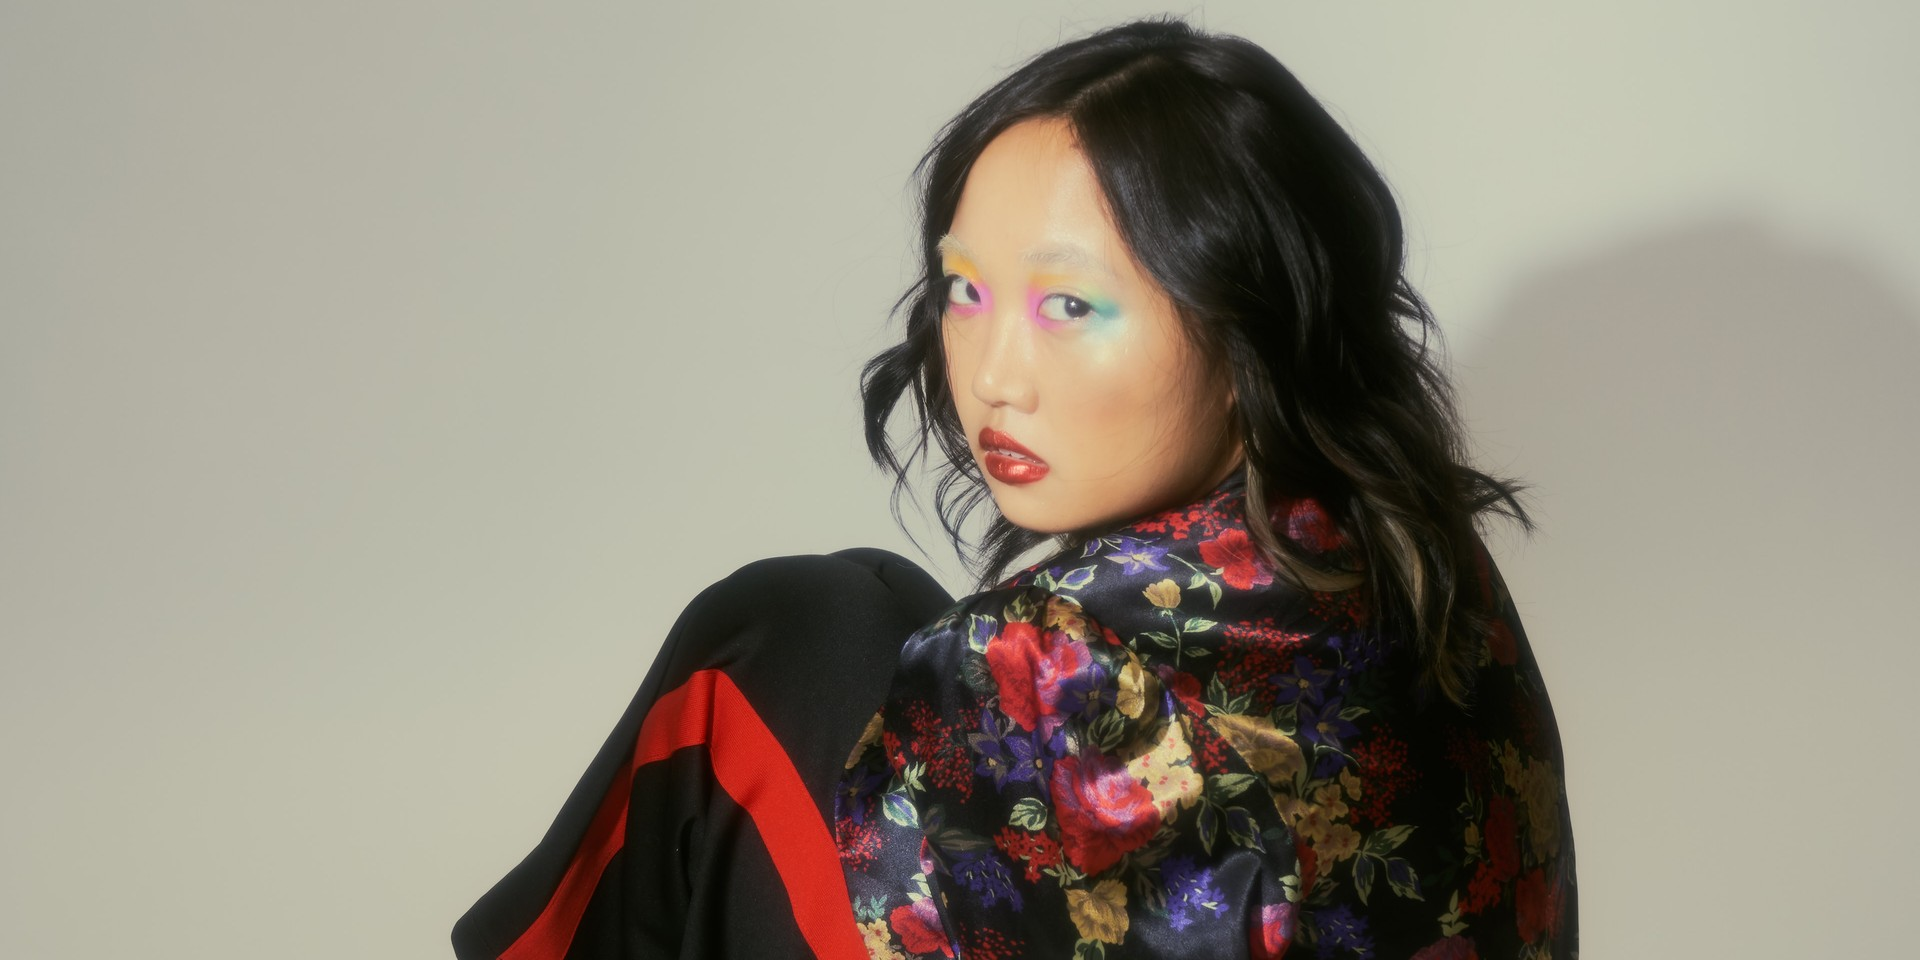 """Introducing: """"I strive to make quality pop music."""" – ena mori on her vibrant pop sound"""